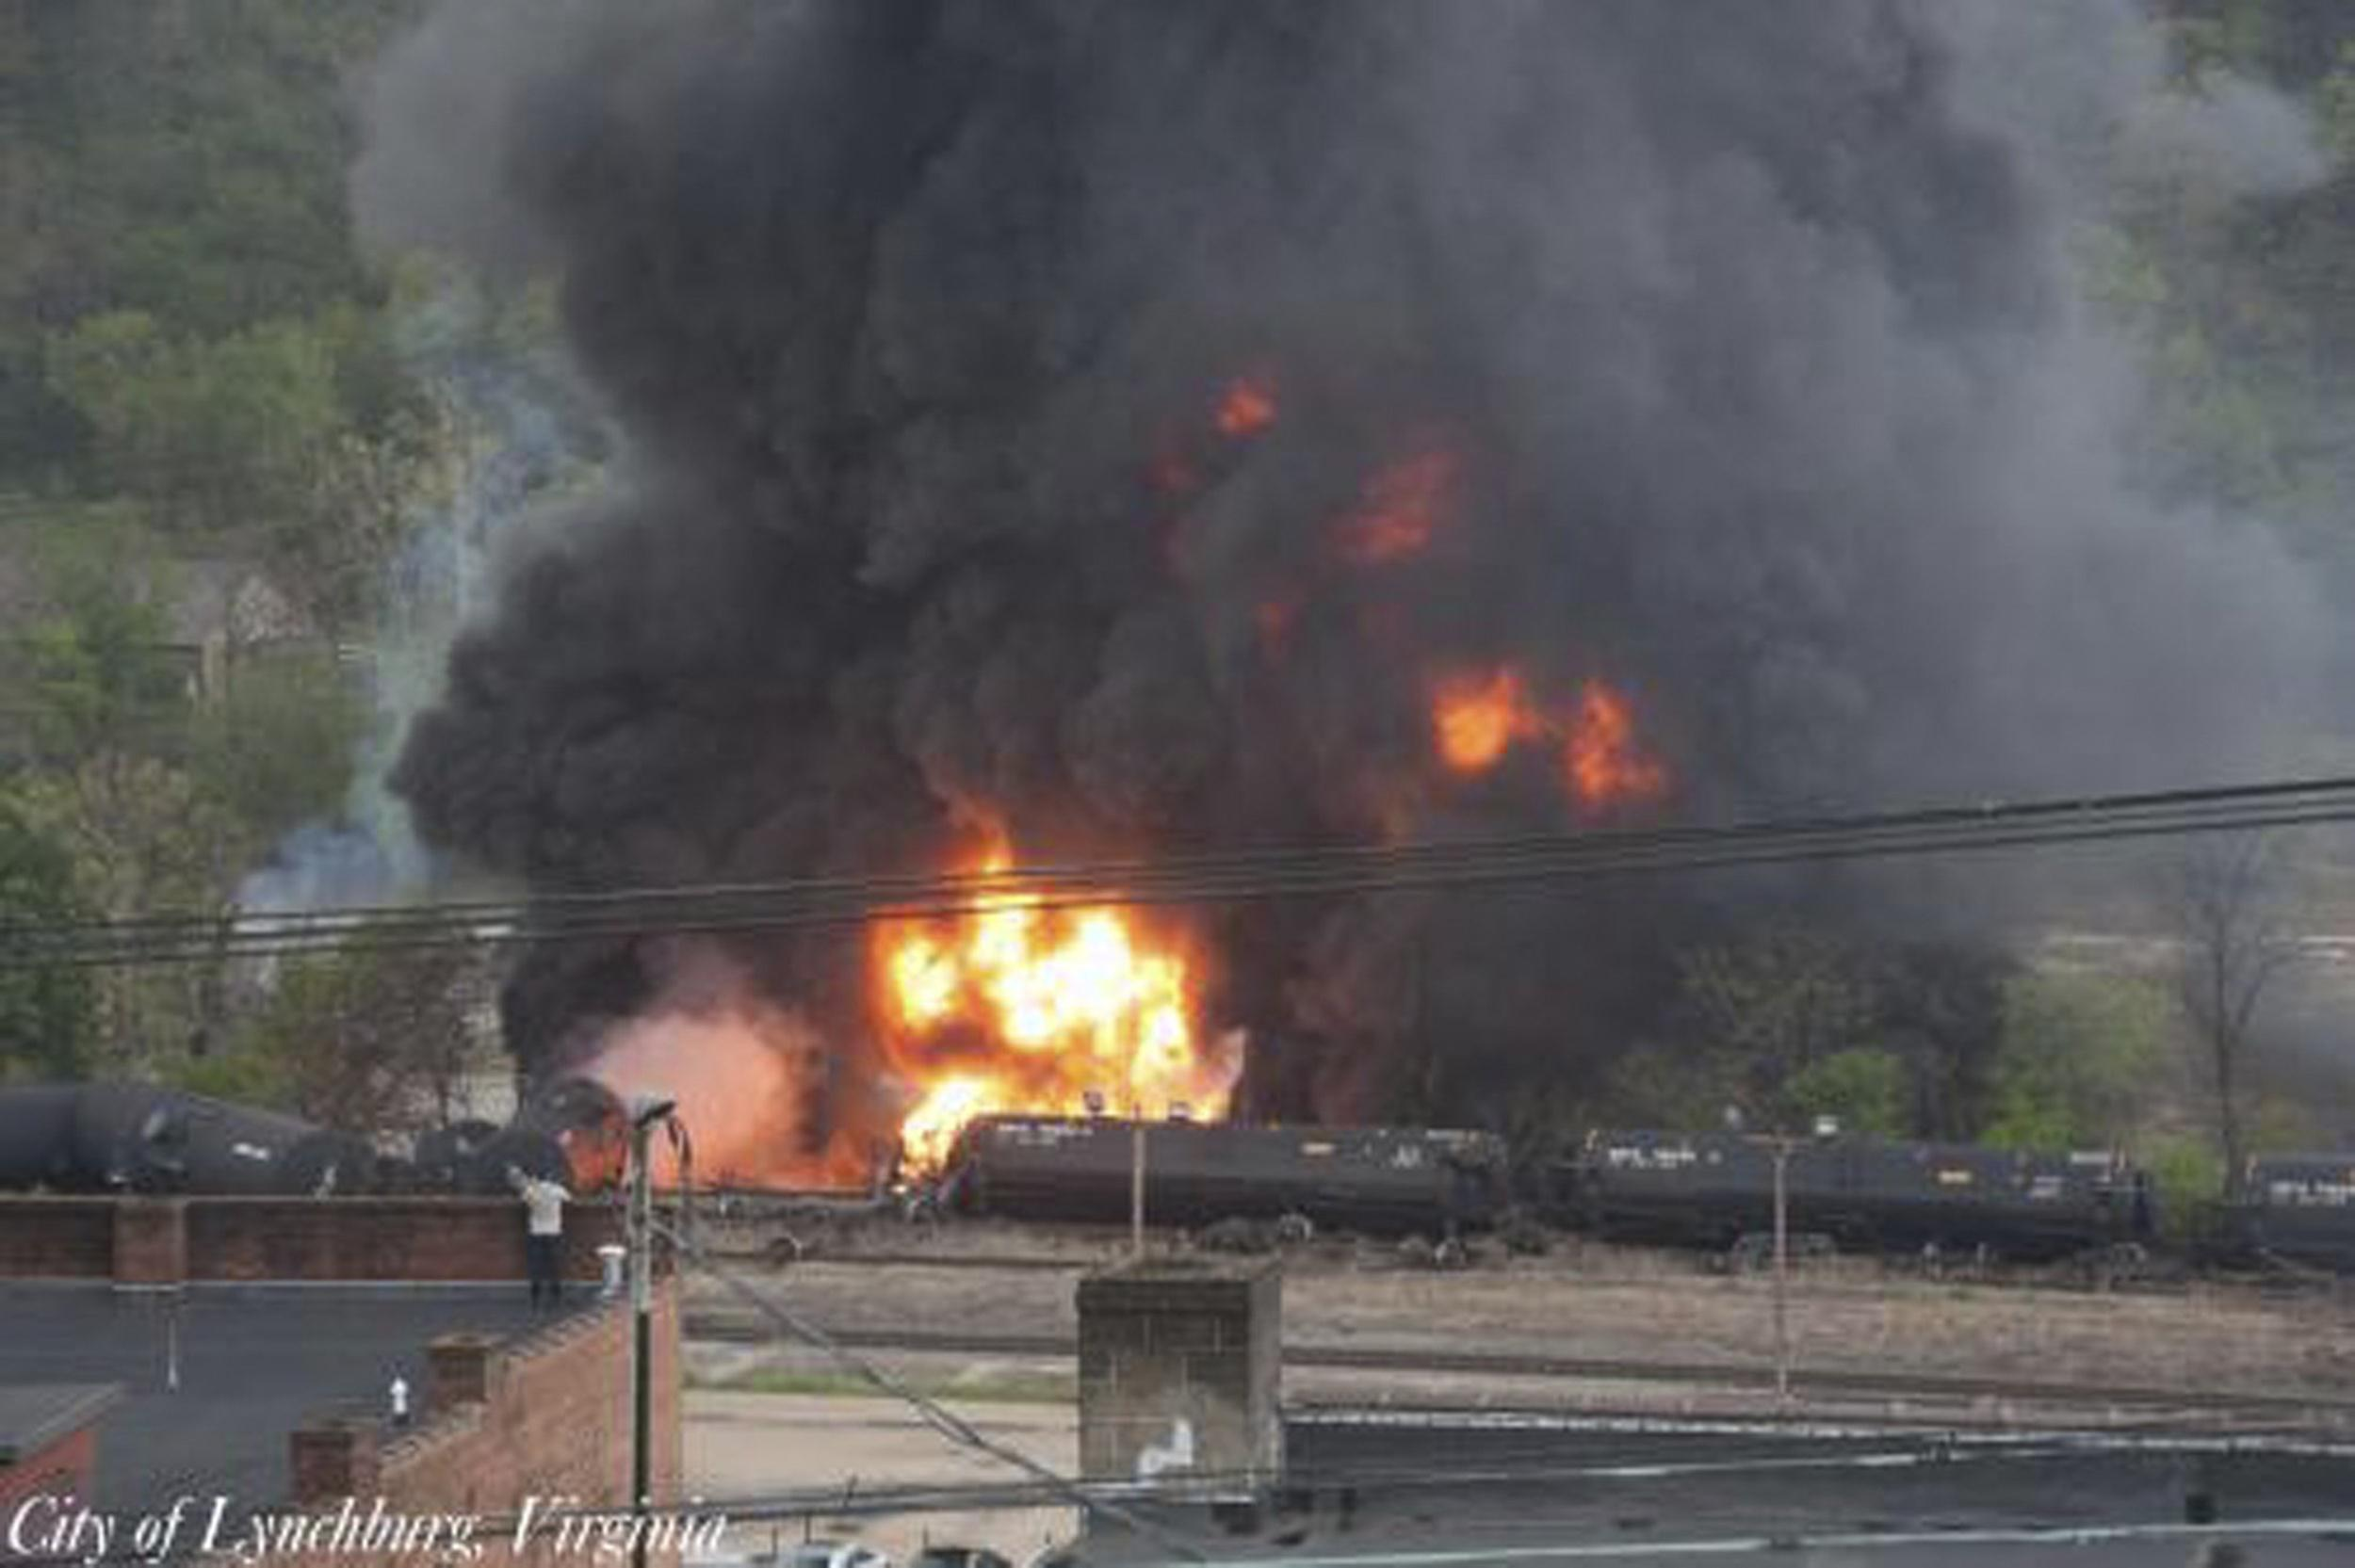 Image: Handout of flames and a large plume of black smoke are shown after a train derailment in Lynchburg, Virginia